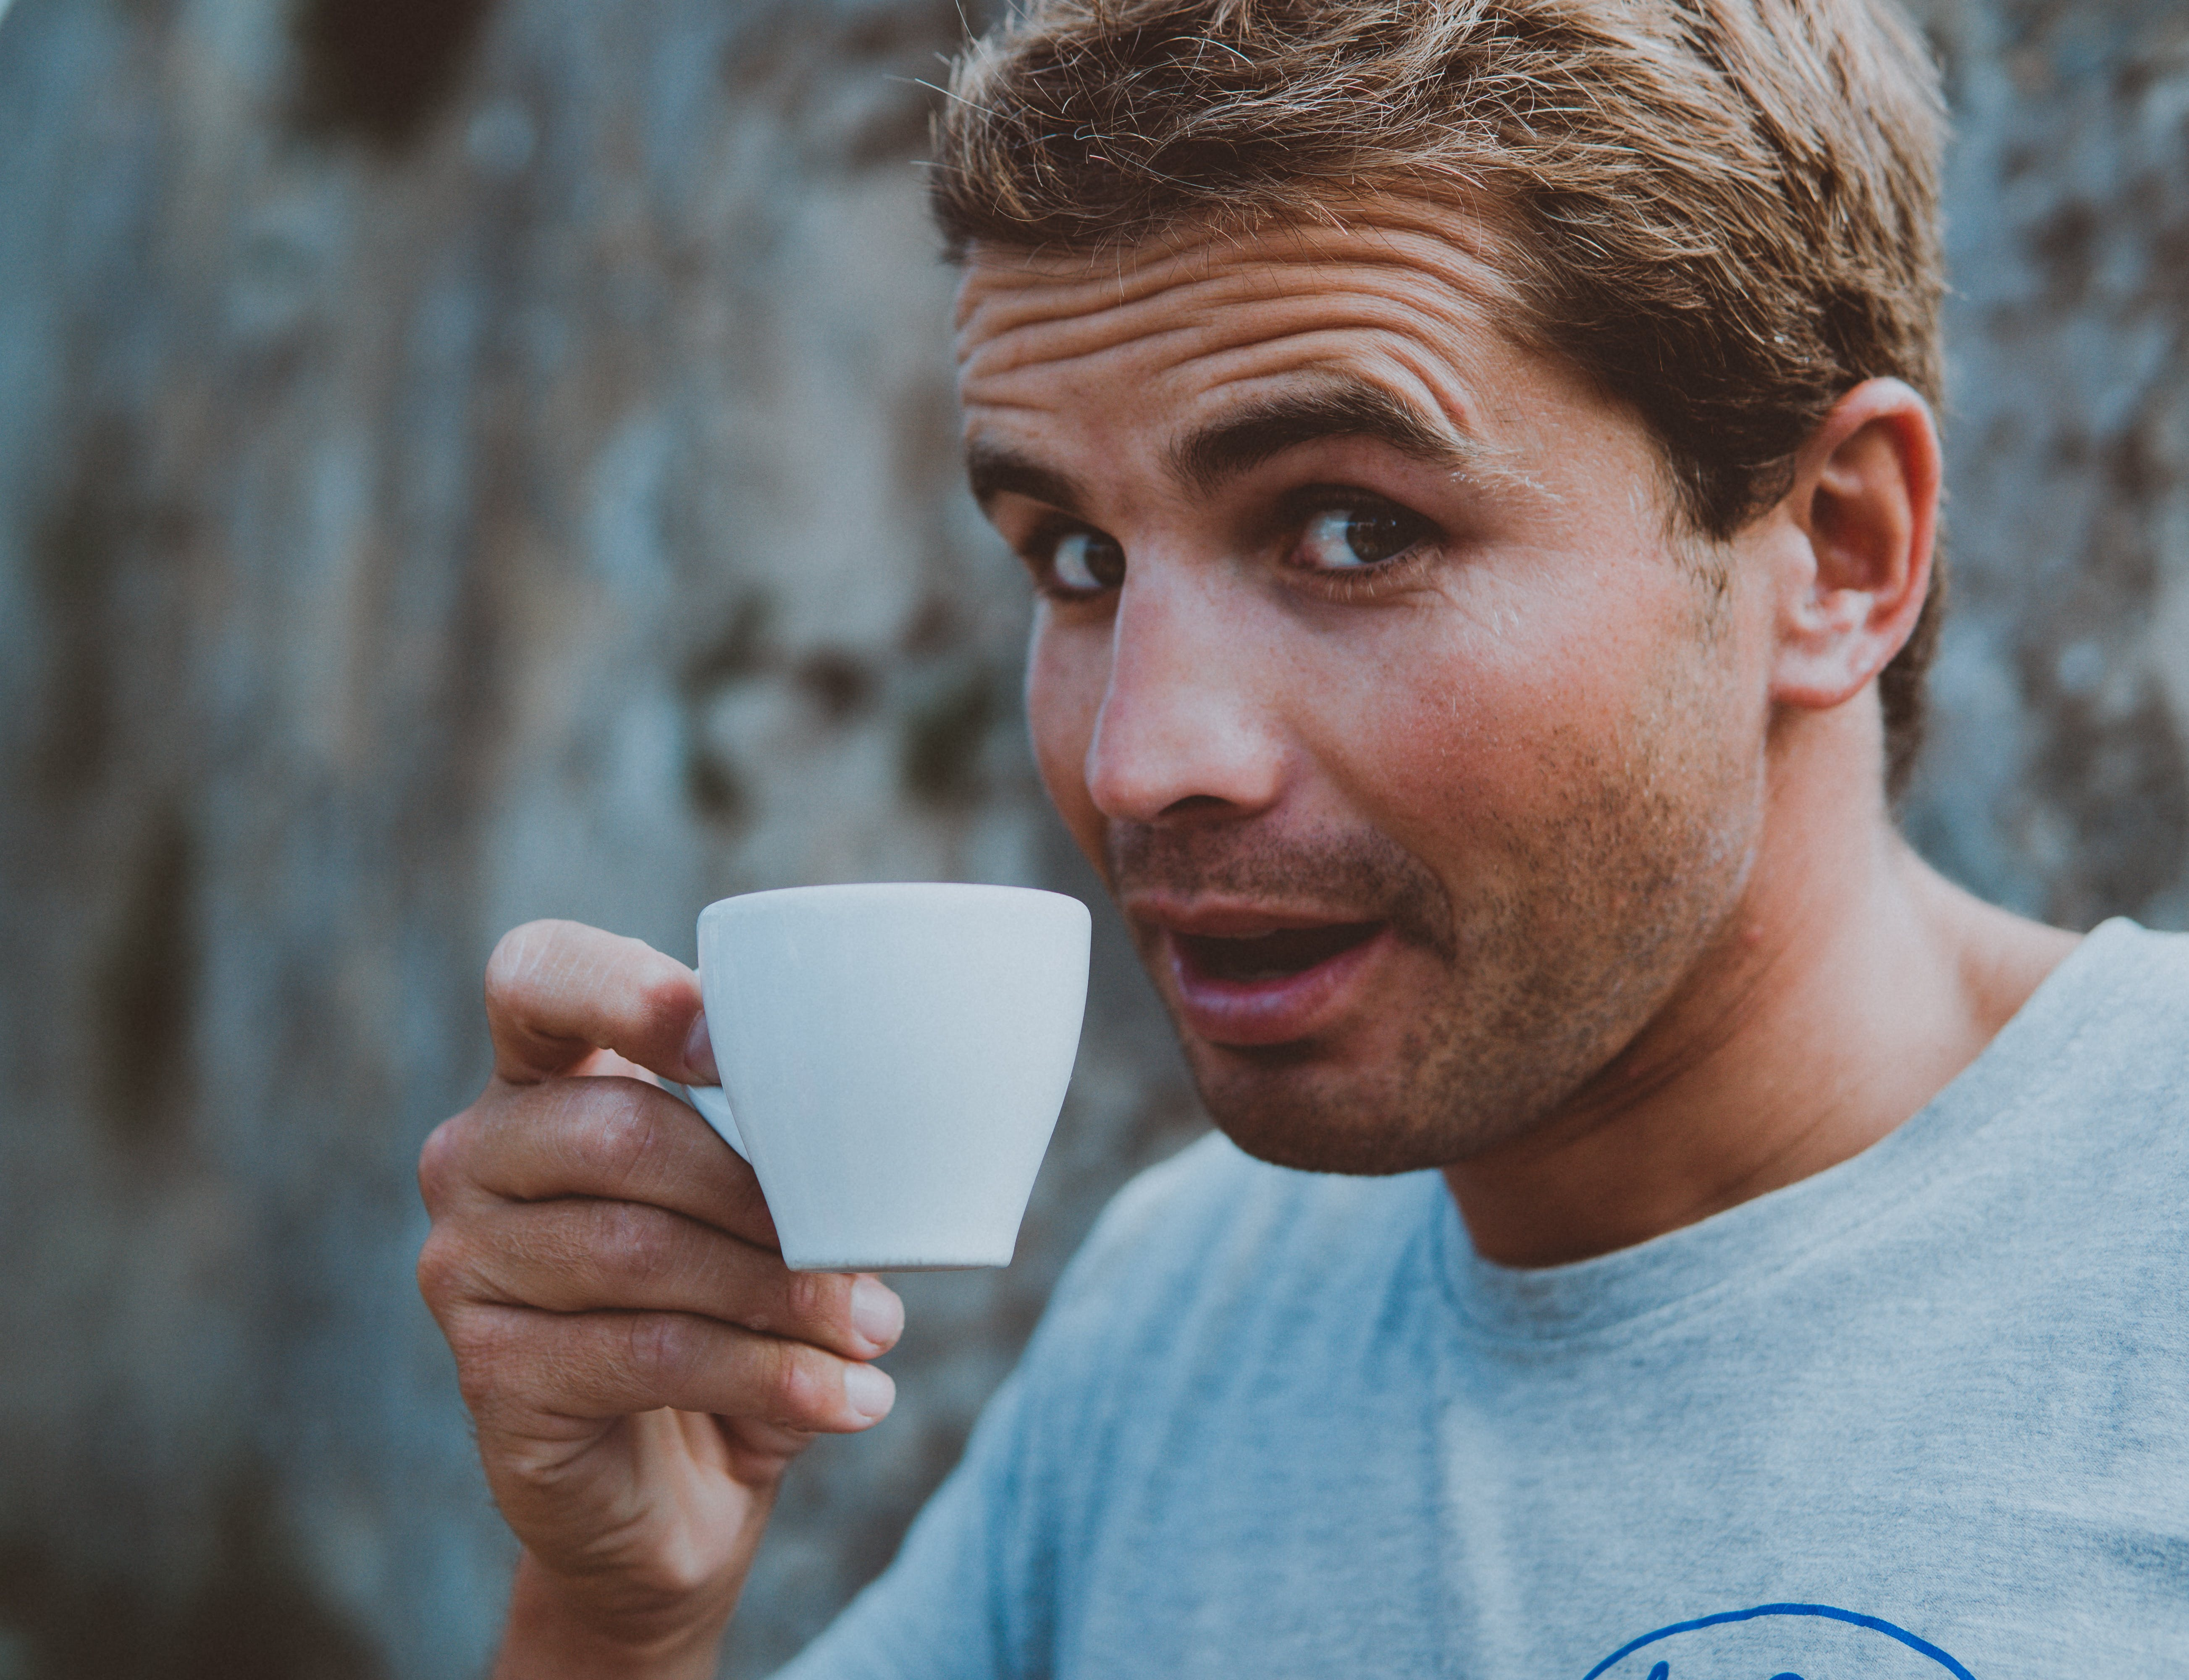 Selective Focus Photography of Man Holding Teacup